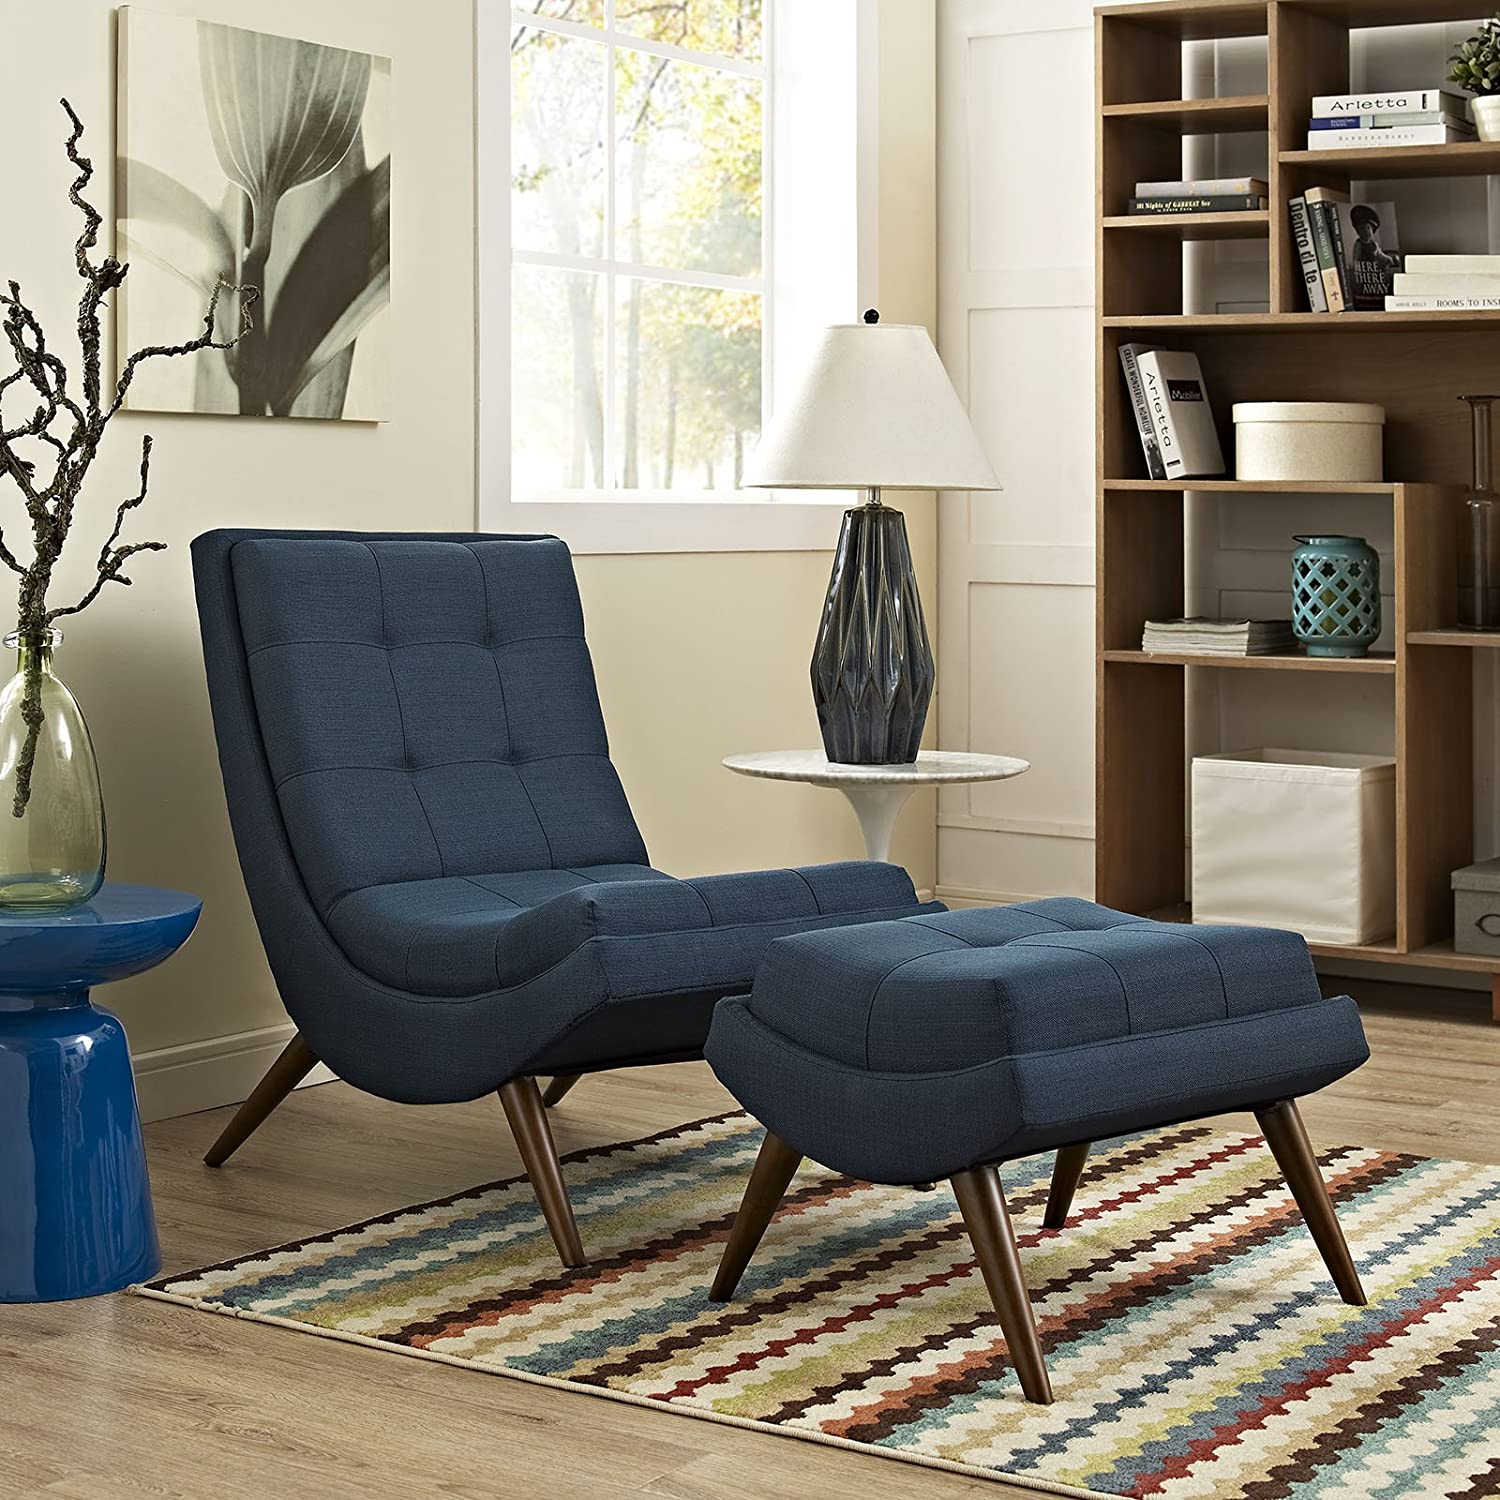 Modway Ramp Fabric Upholstered Lounge and Ottoman 2-Piece Set in Azure